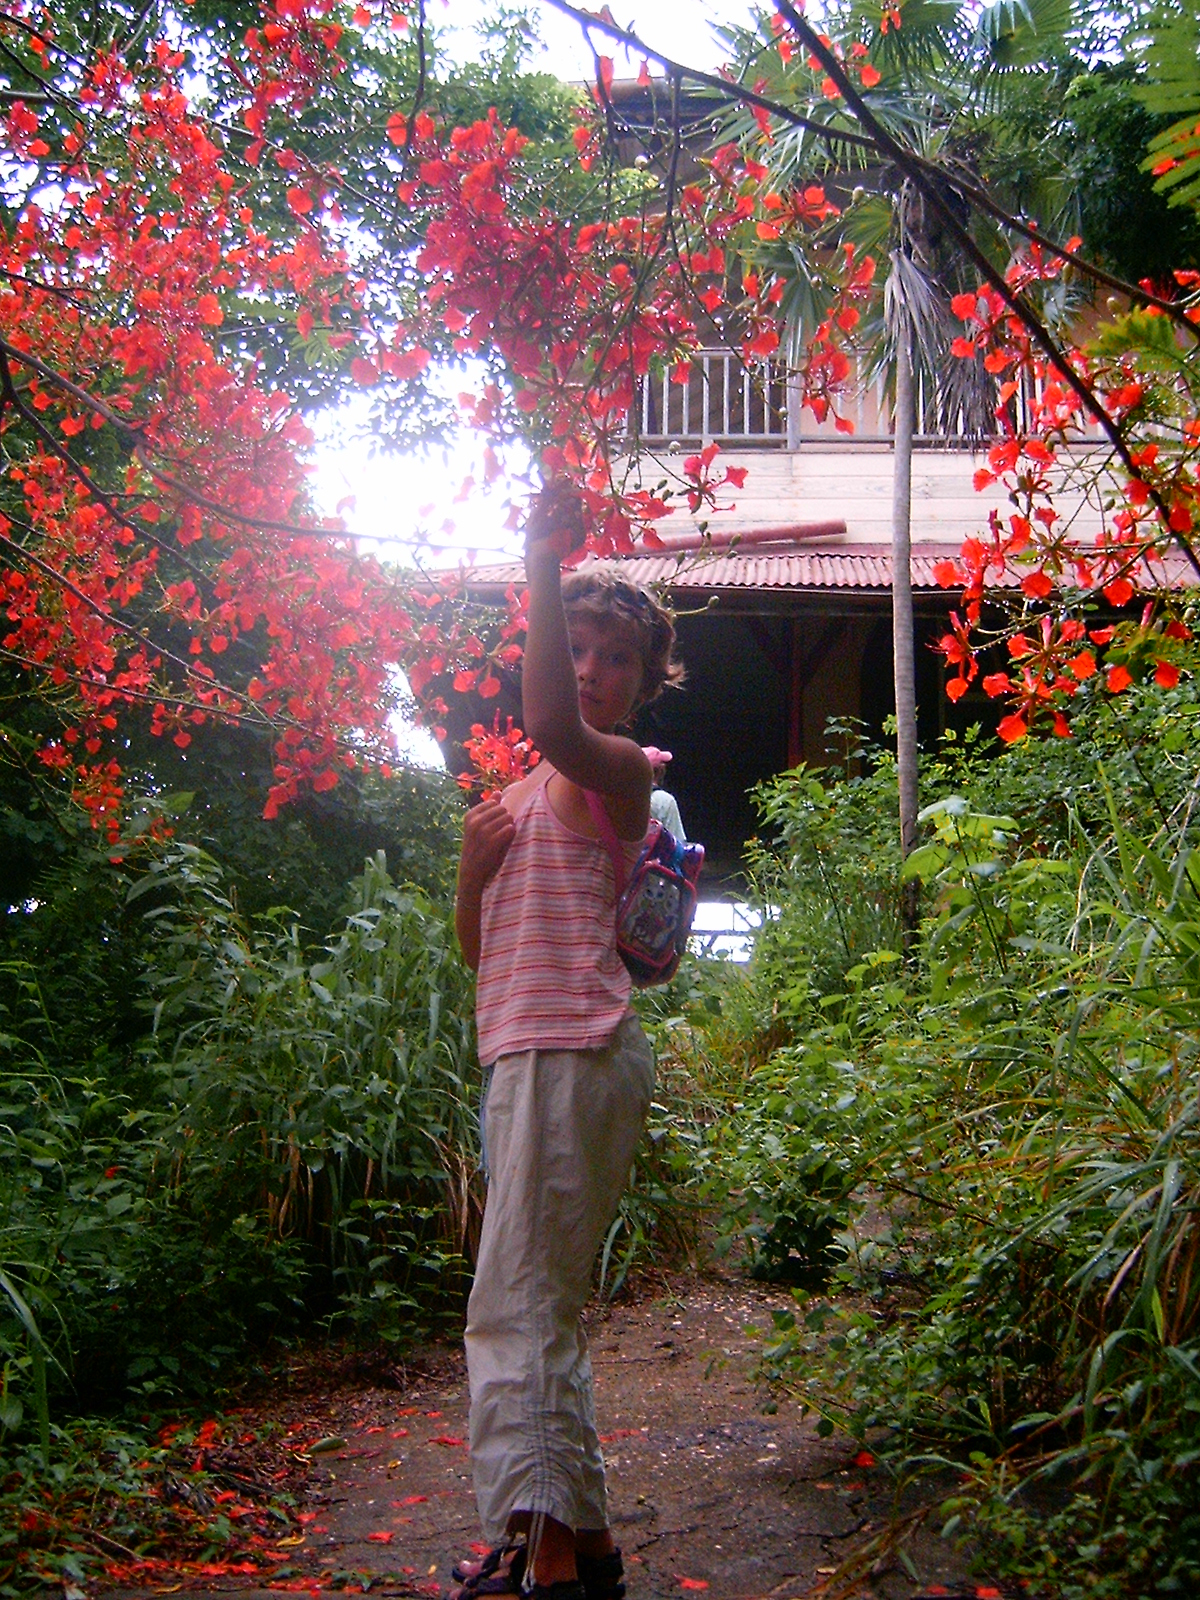 BLOODY FLOWERS @ HAUNTED CHACACHACARE